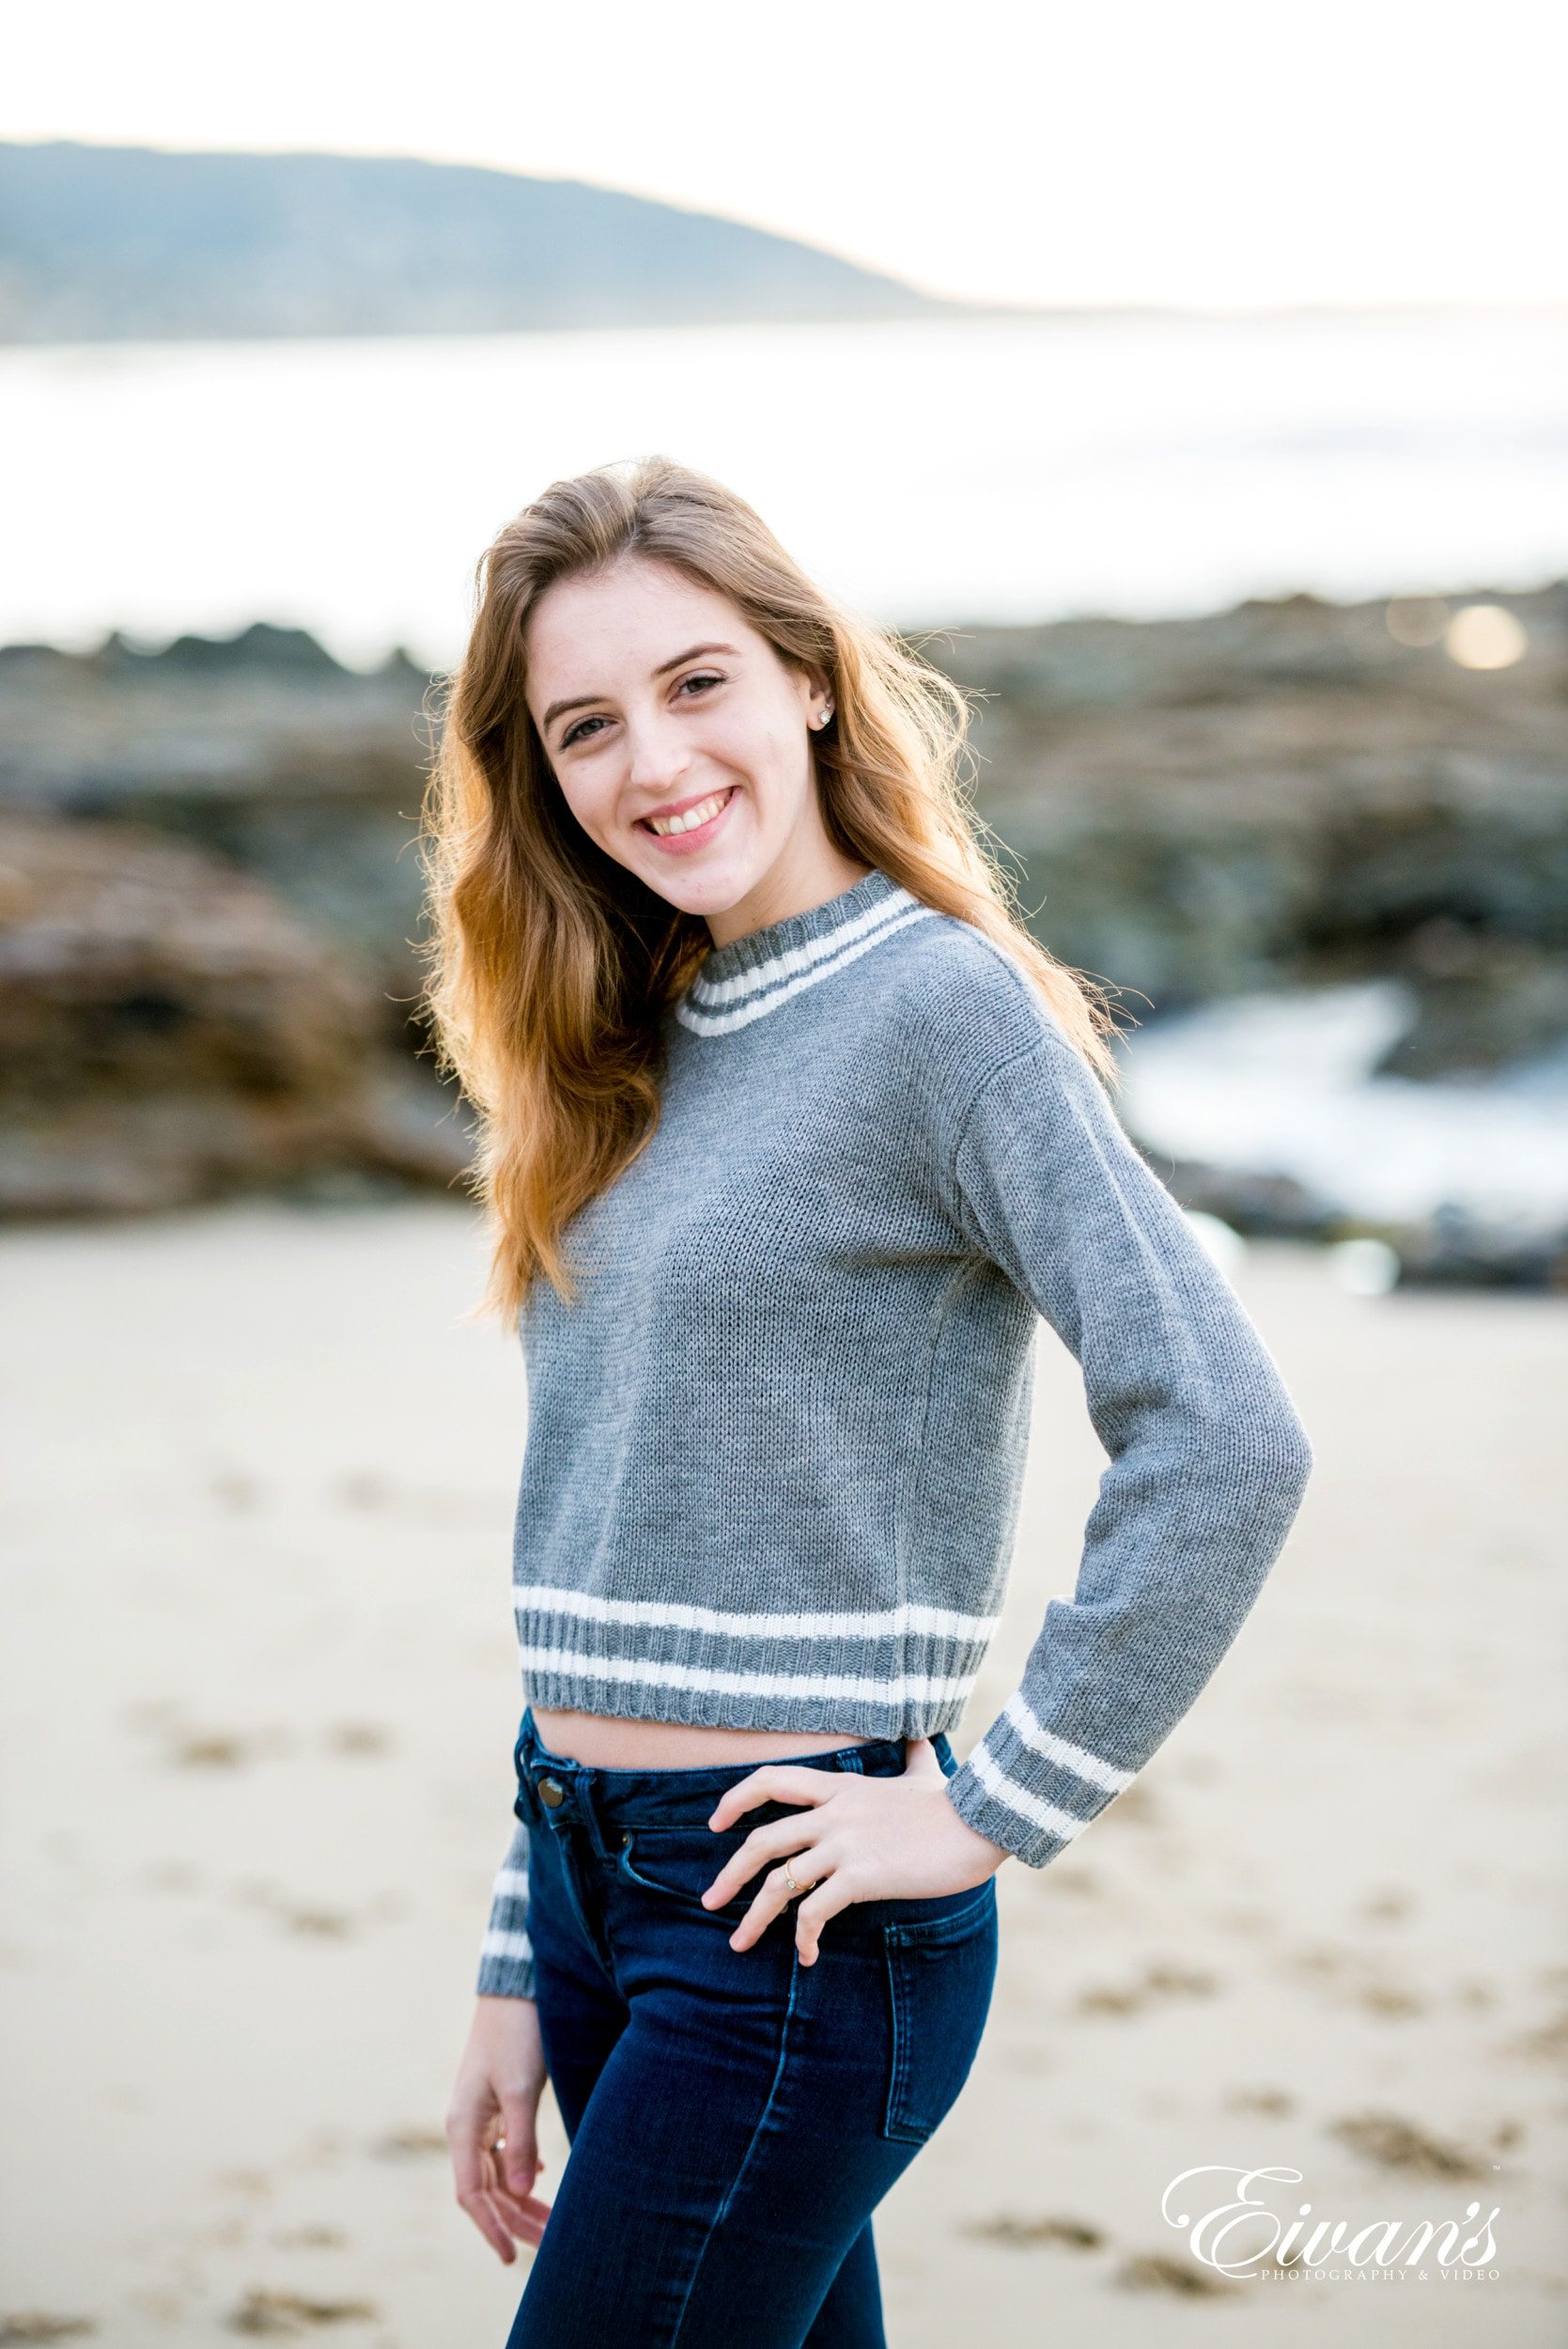 woman in gray long sleeve shirt and blue denim jeans standing on beach during daytime